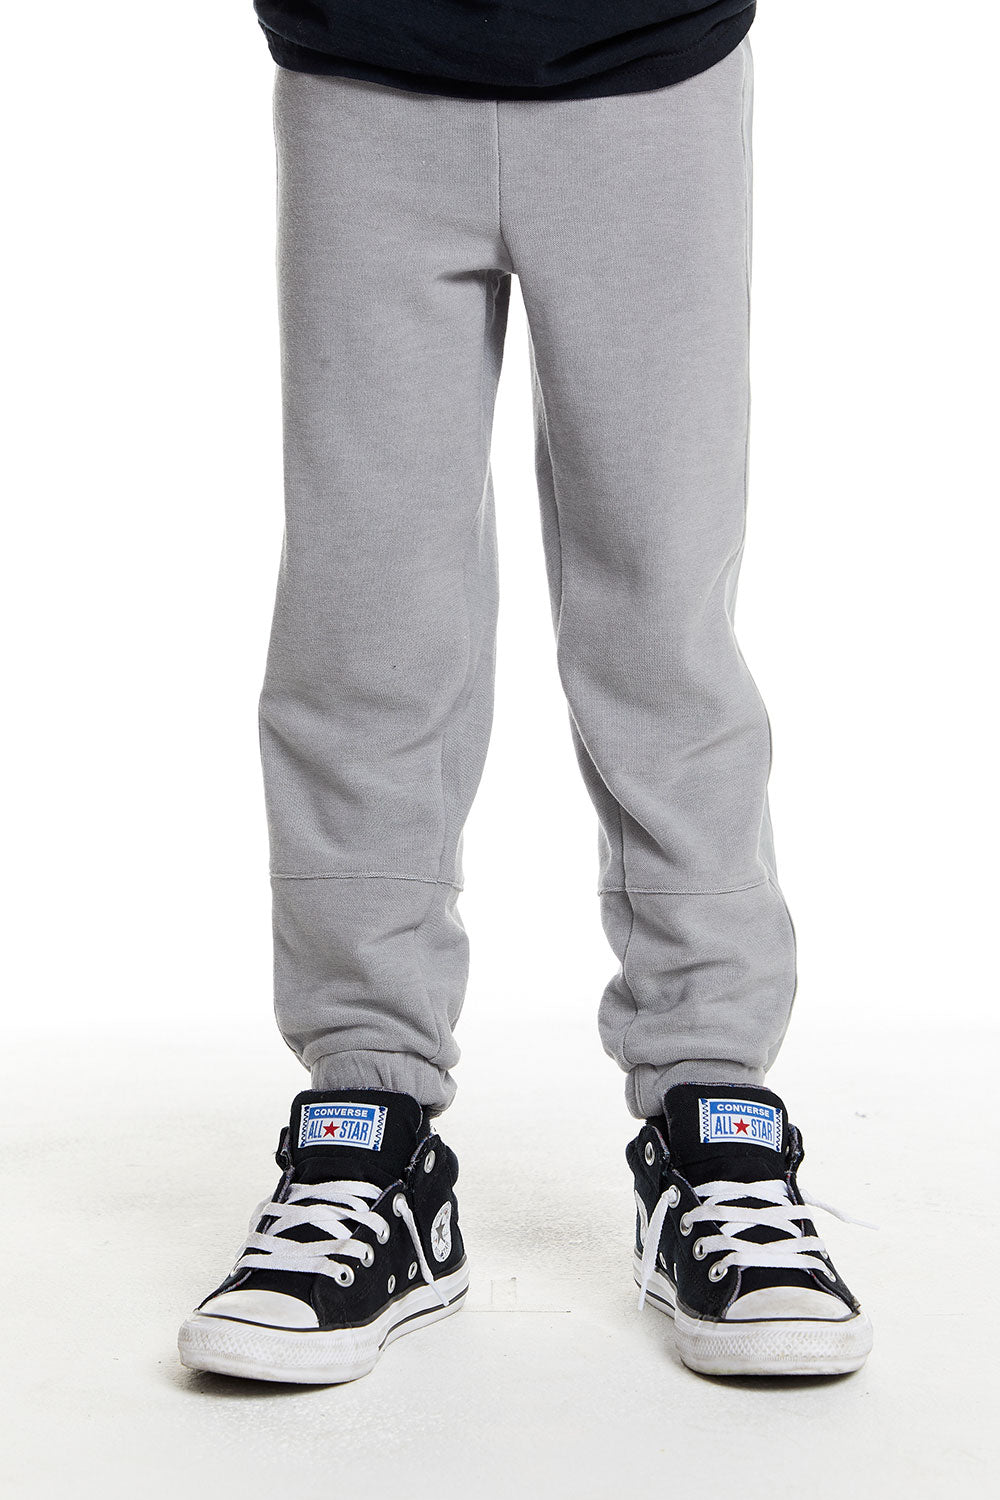 Boys Cozy Knit Poplin Blocked Track Pant in Platinum Grey